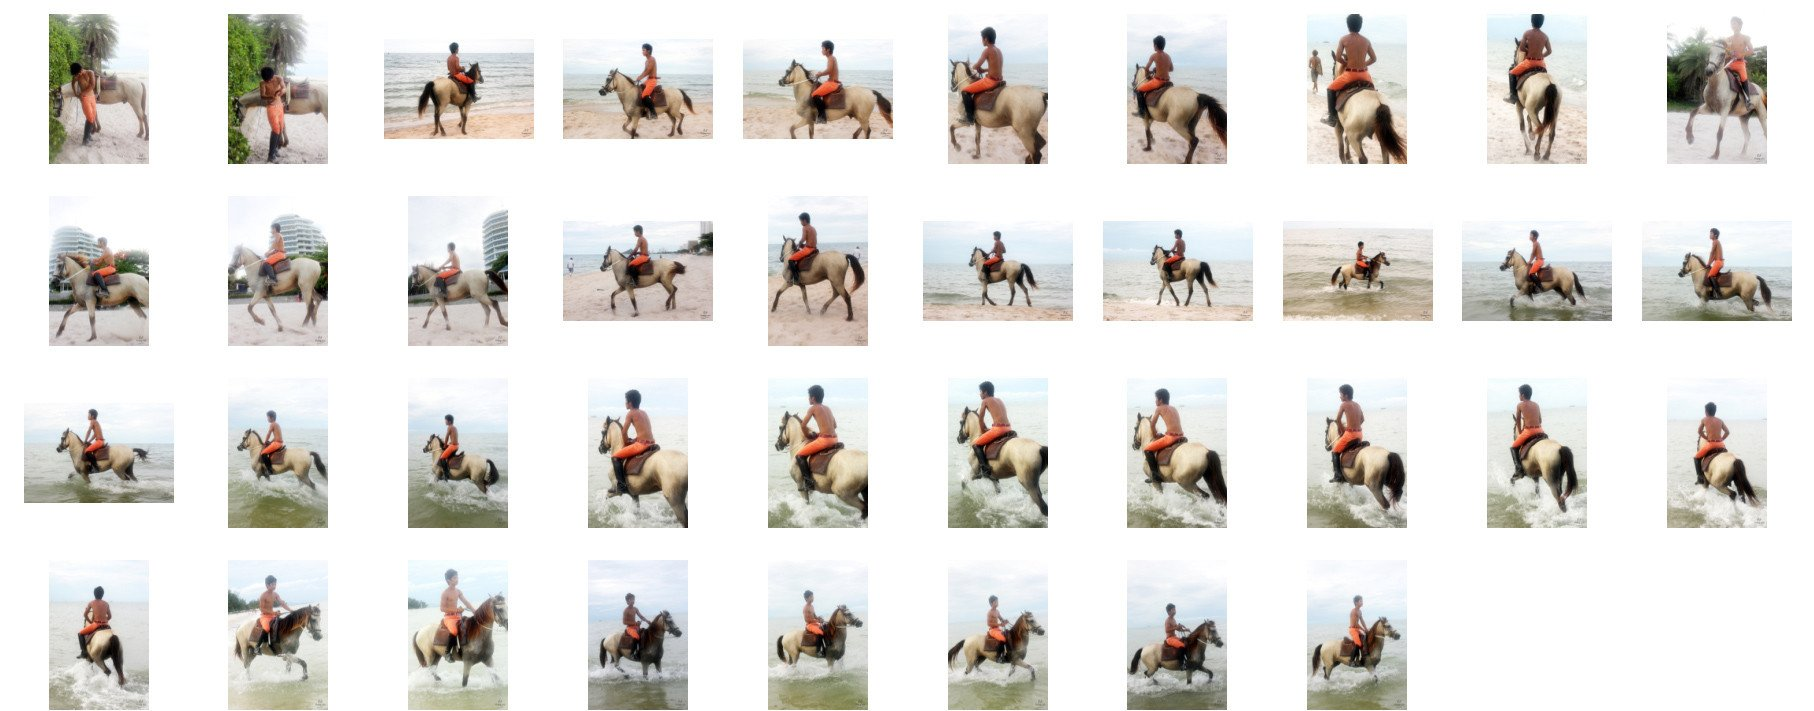 David Season 1 Riding with Saddle on Buckskin Horse, Part 1 - Riding.Vision